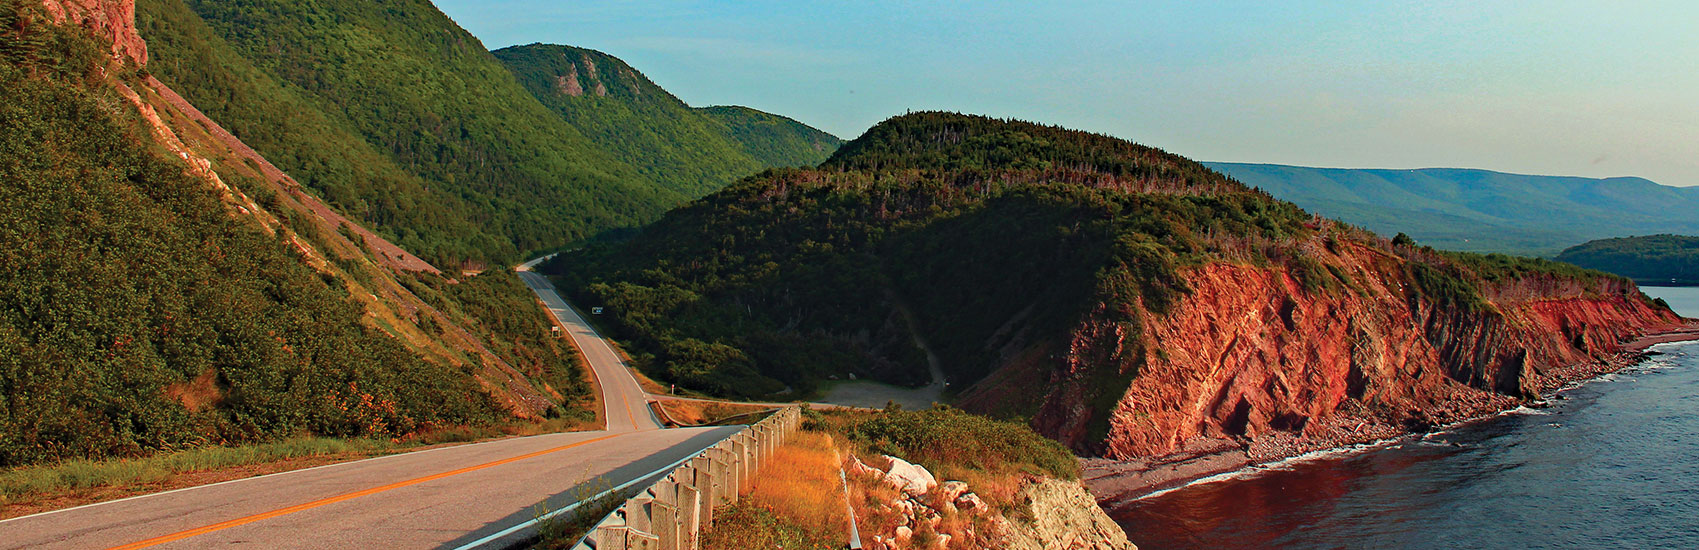 Maritime Coastal Wonders featuring the Cabot Trail with Collette 3